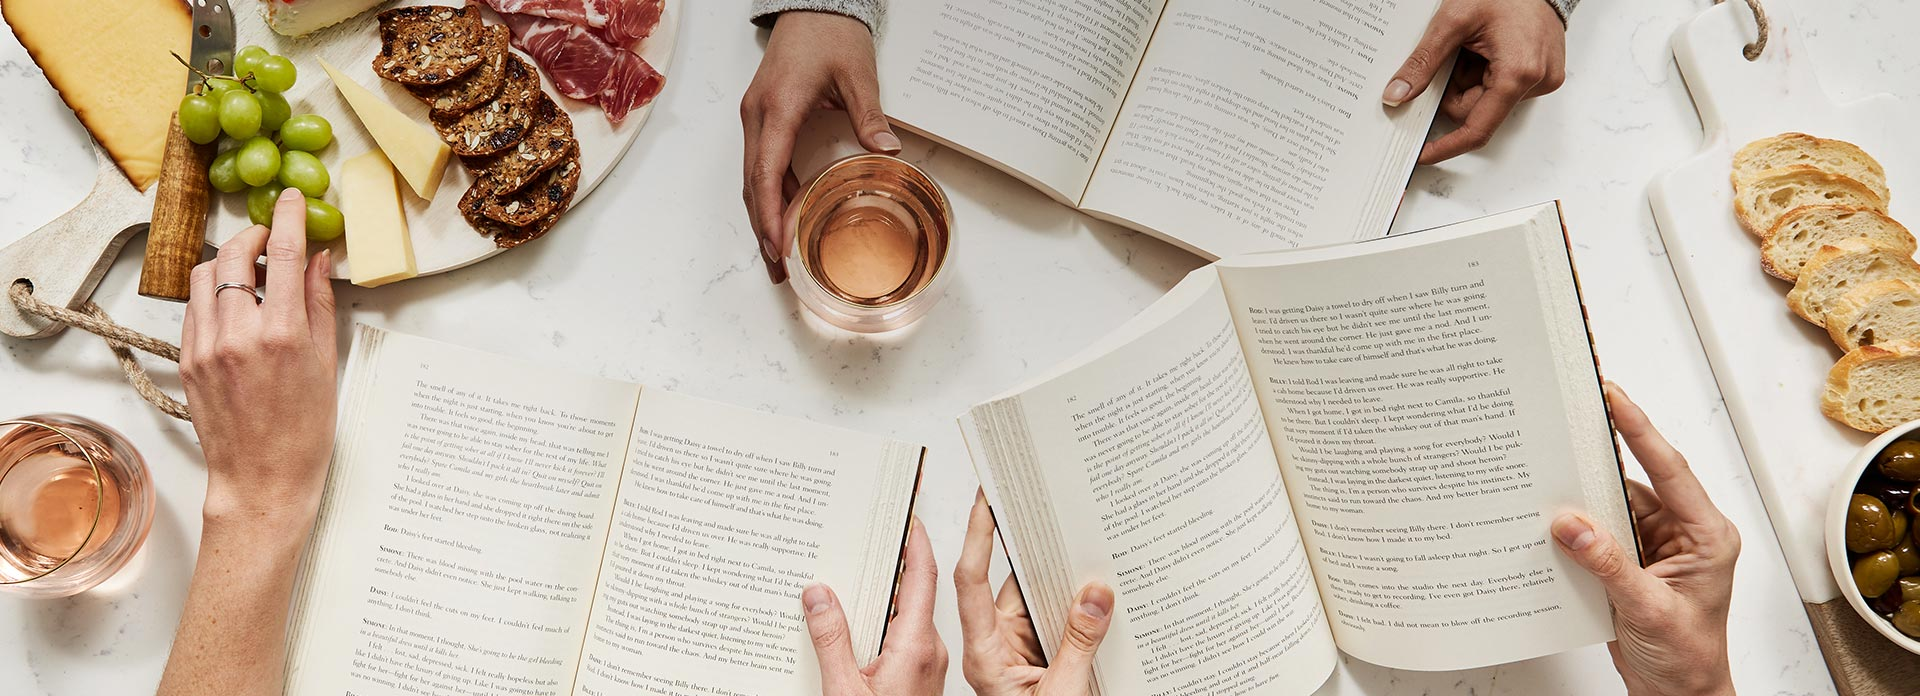 Aerial shot of three sets of hands with open books, and a glass of wine and a cheese board on a white marble table.